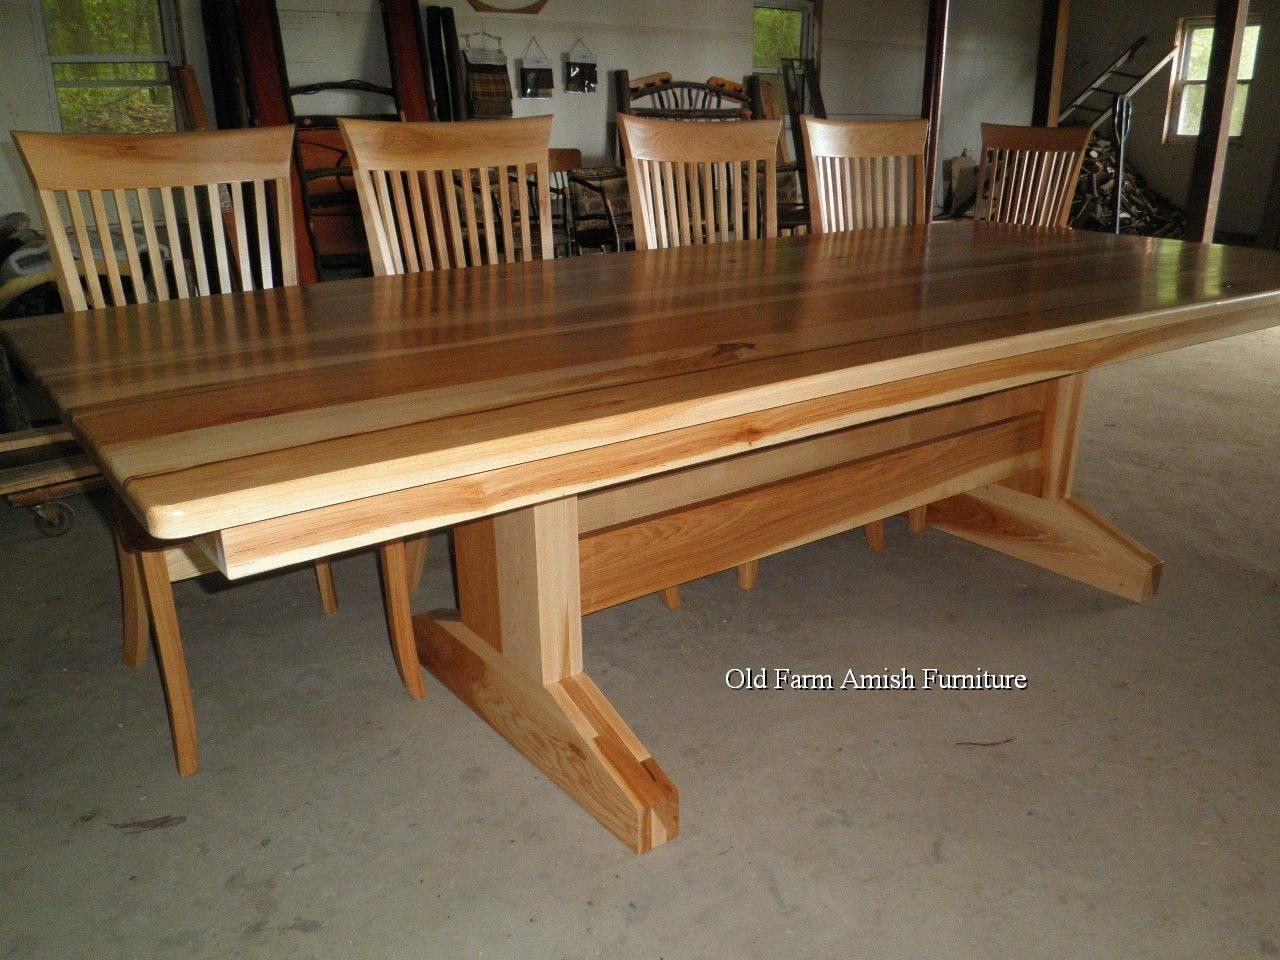 amish kitchen tables wicker stools custom dining room table chairs by old farm furniture made